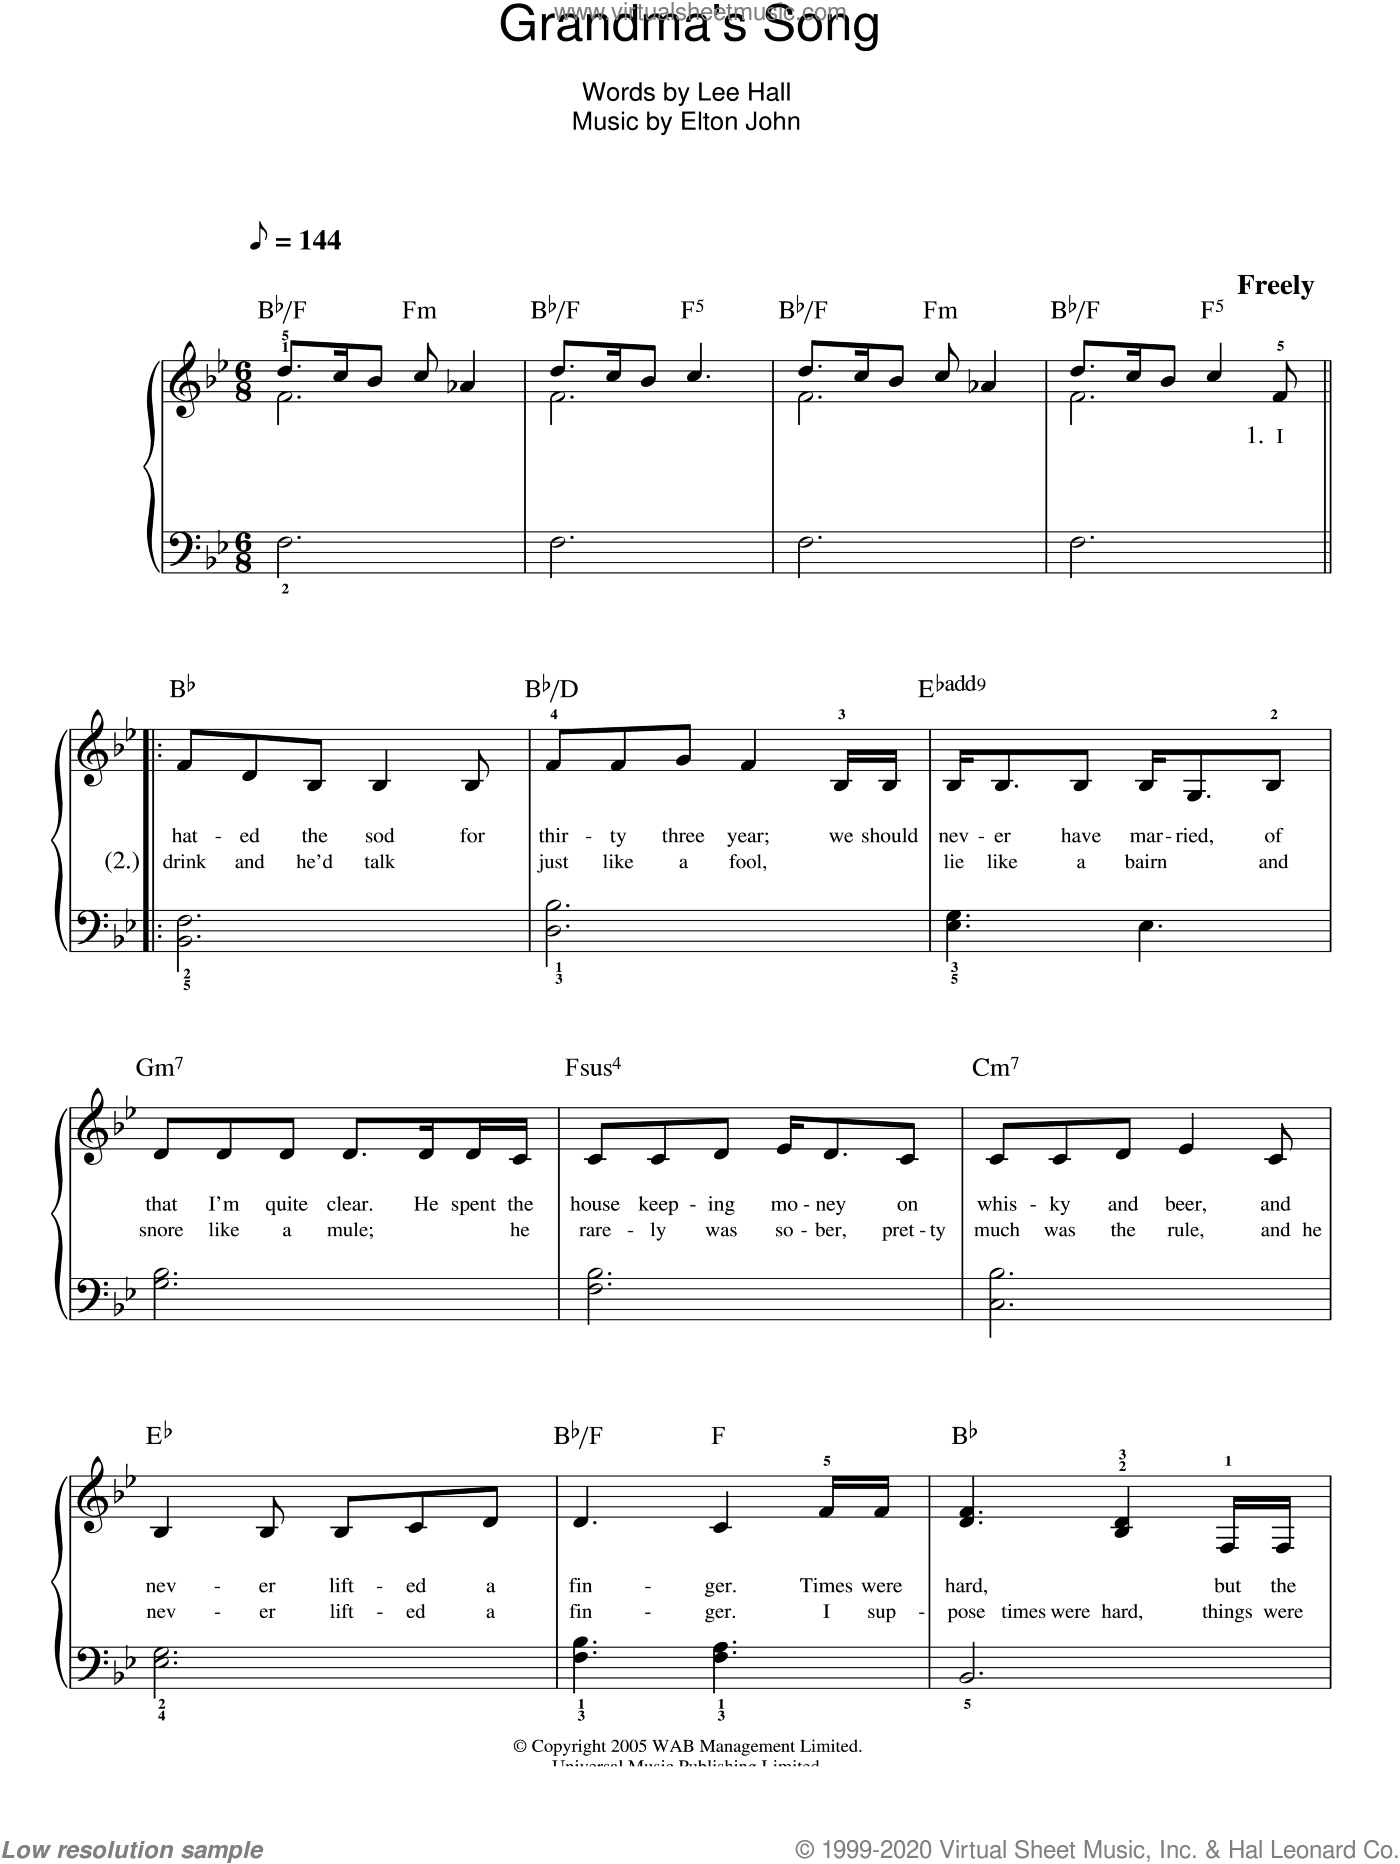 Grandma's Song sheet music for piano solo by Elton John, Billy Elliot (Musical) and Lee Hall, easy skill level